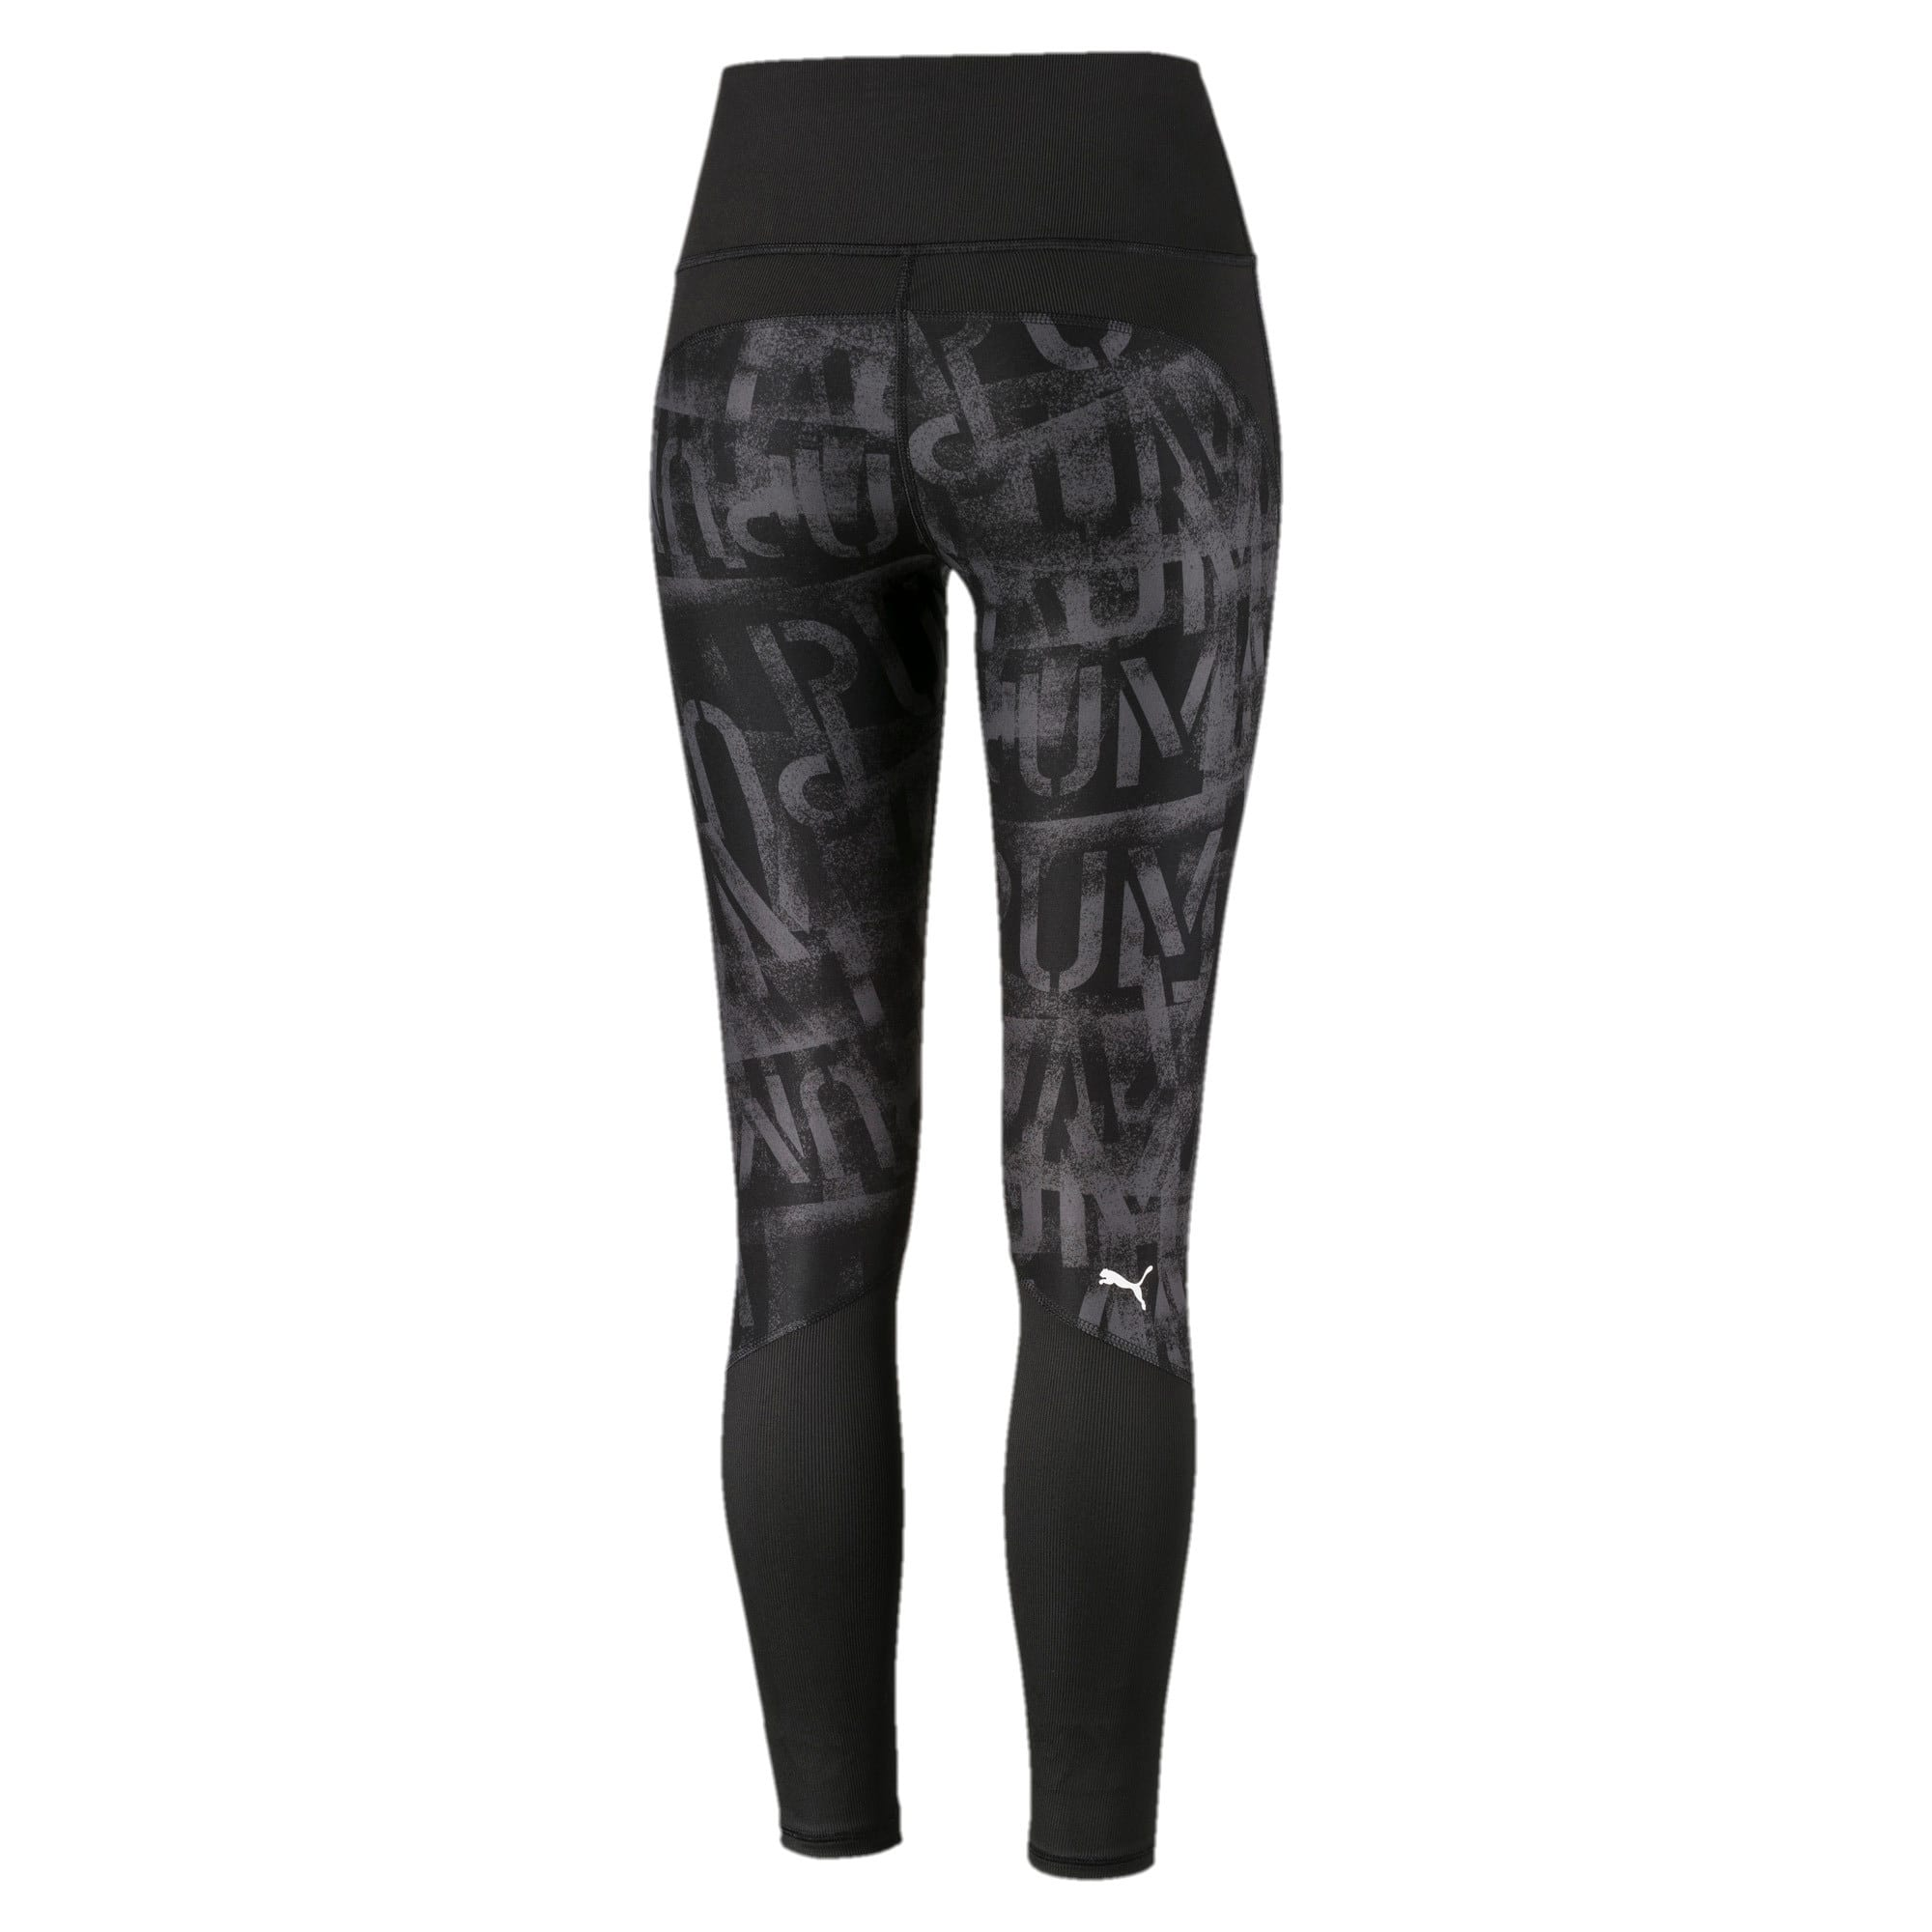 Thumbnail 5 of Studio 7/8 Graphic Women's Tights, Puma Black, medium